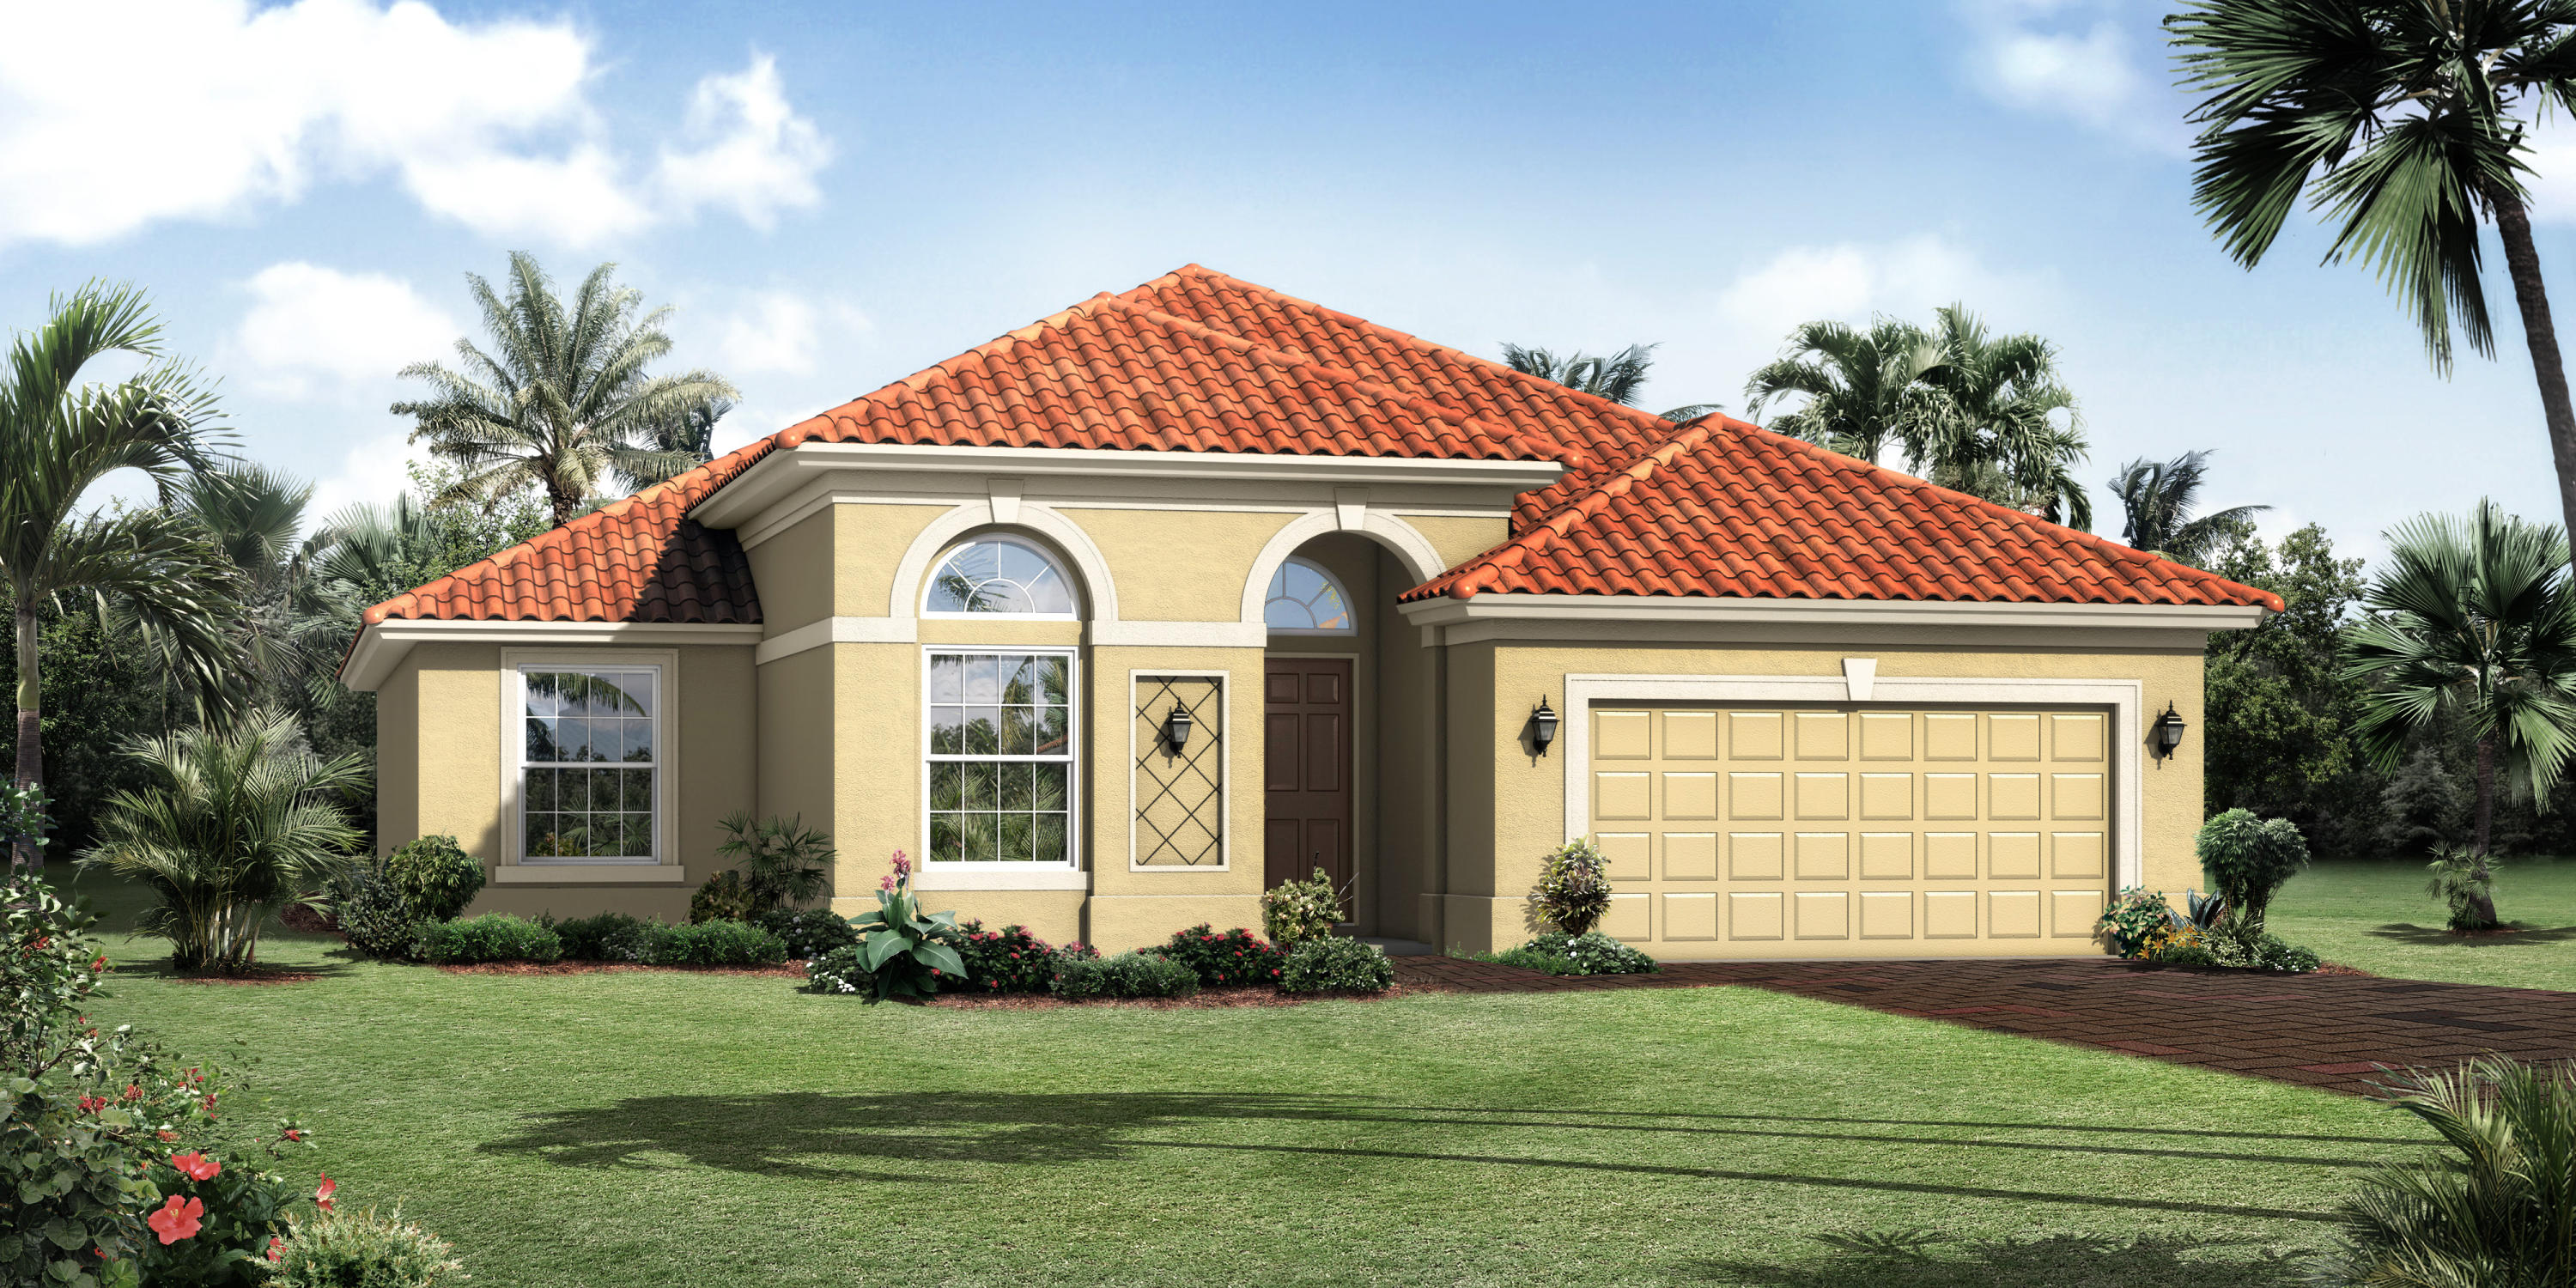 Photo of 6153 Graysen Square, Vero Beach, FL 32967